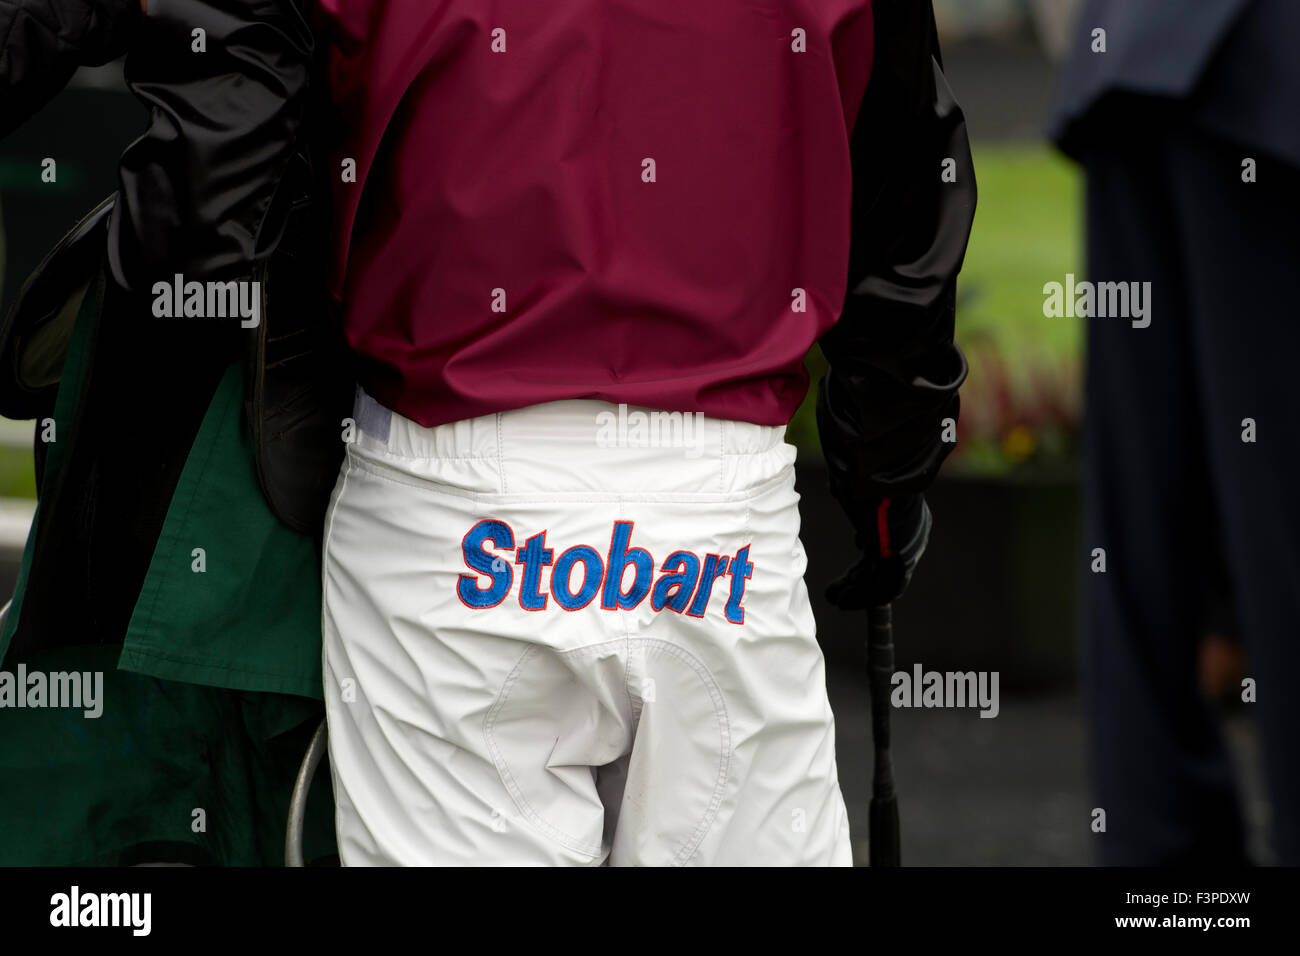 Stobart Sponsorship On A Jockey`s Breeches, Towcester Races, UK  Clothing Sponsorship